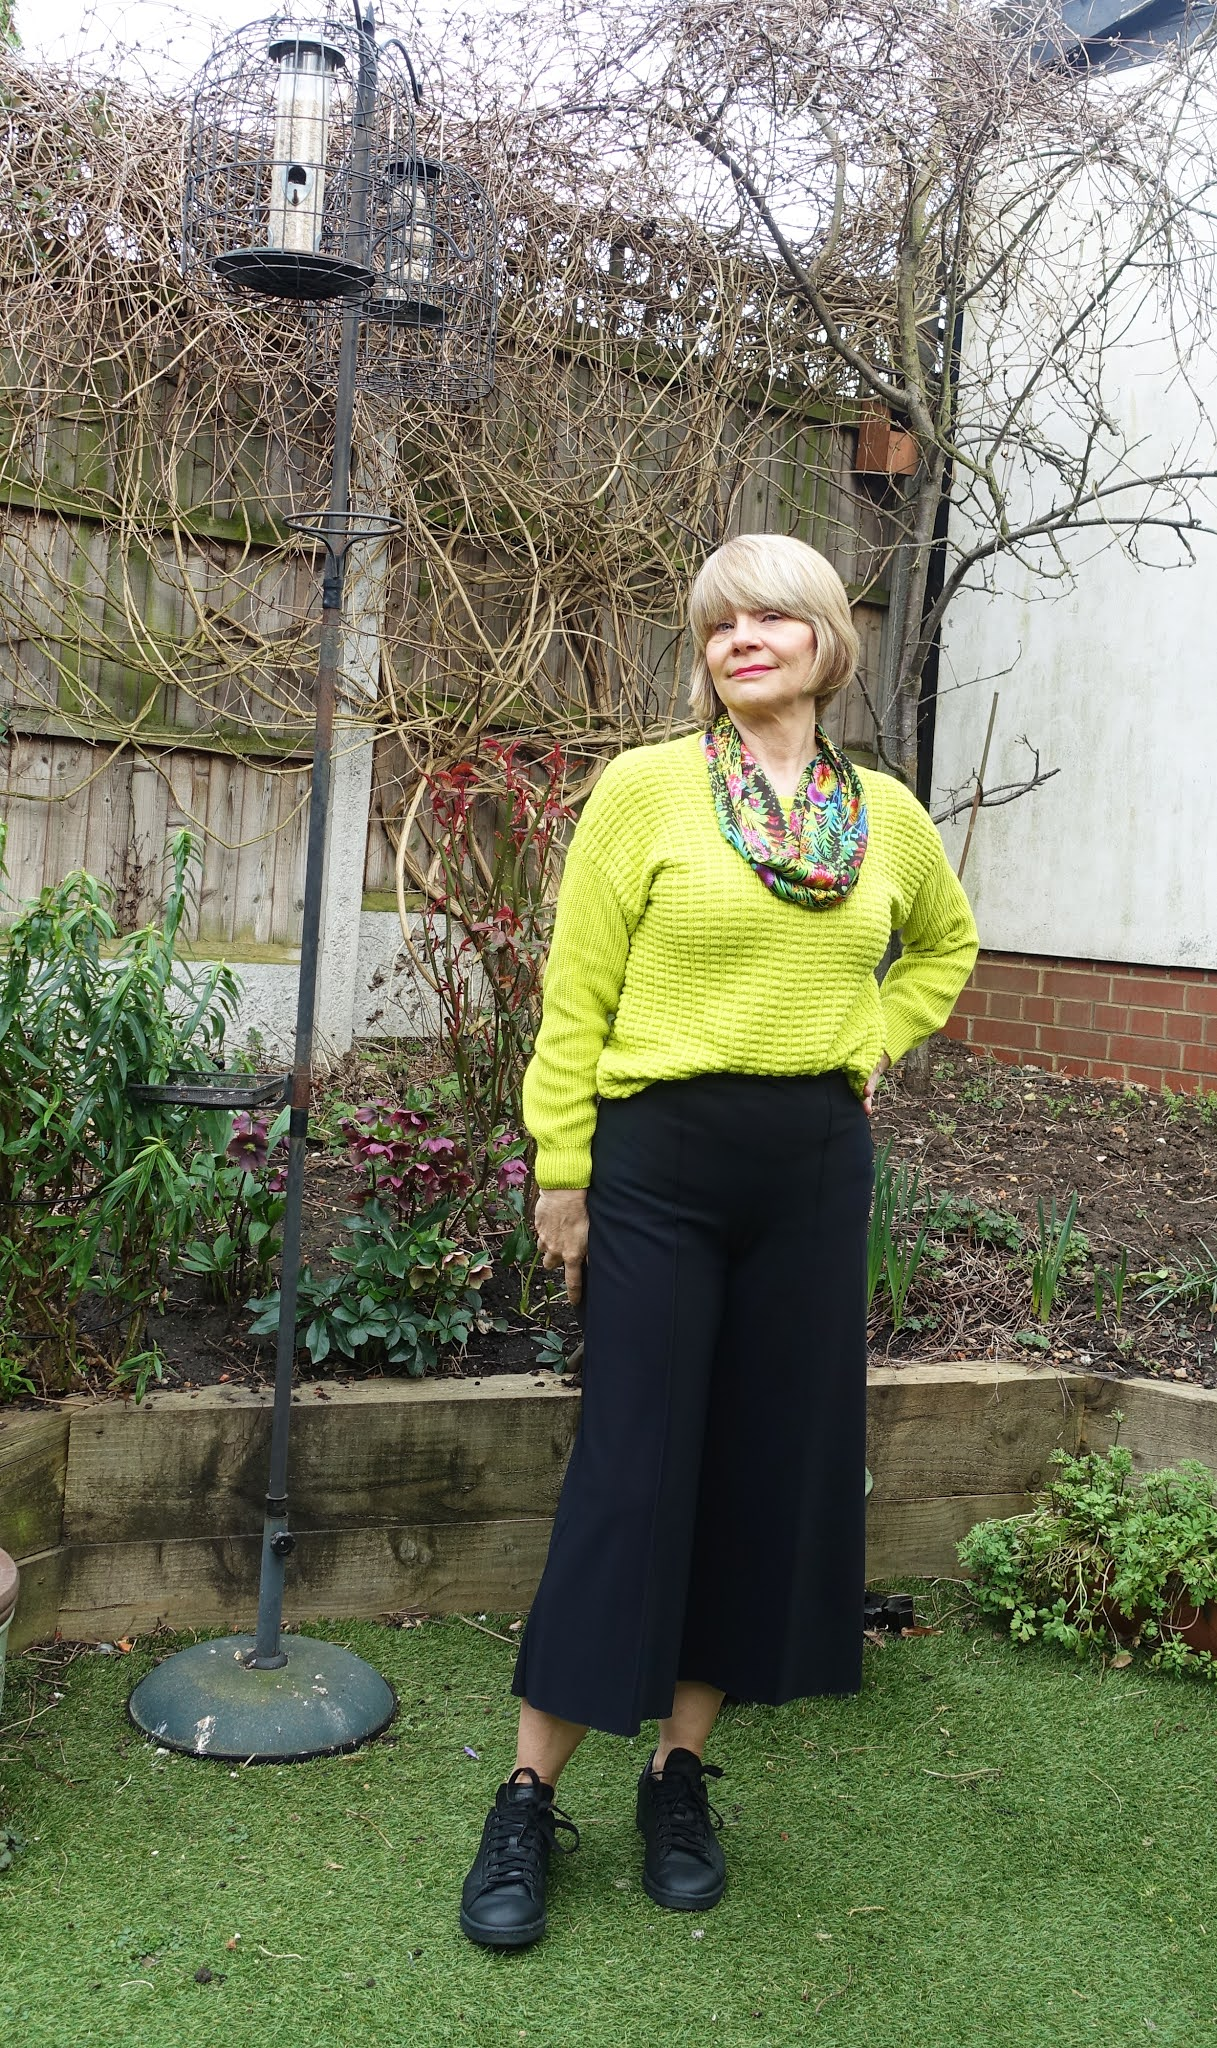 A jumper, scarf and culottes makes a stylish casual outfit with a nod to spring with lime green and bright colors of Samoa